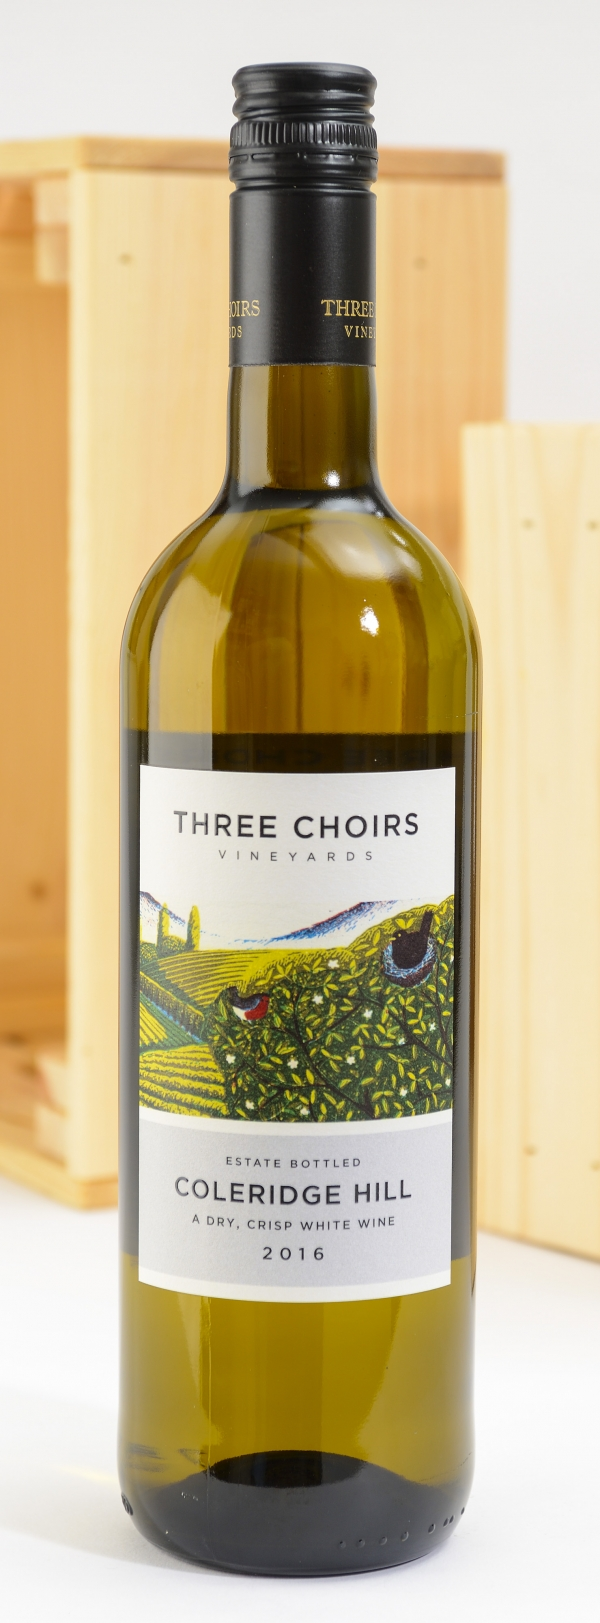 <p>Three Choirs Coleridge Hill 2009 - Elderflower and Nettles Wine | Hartington Cheese Shop</p>